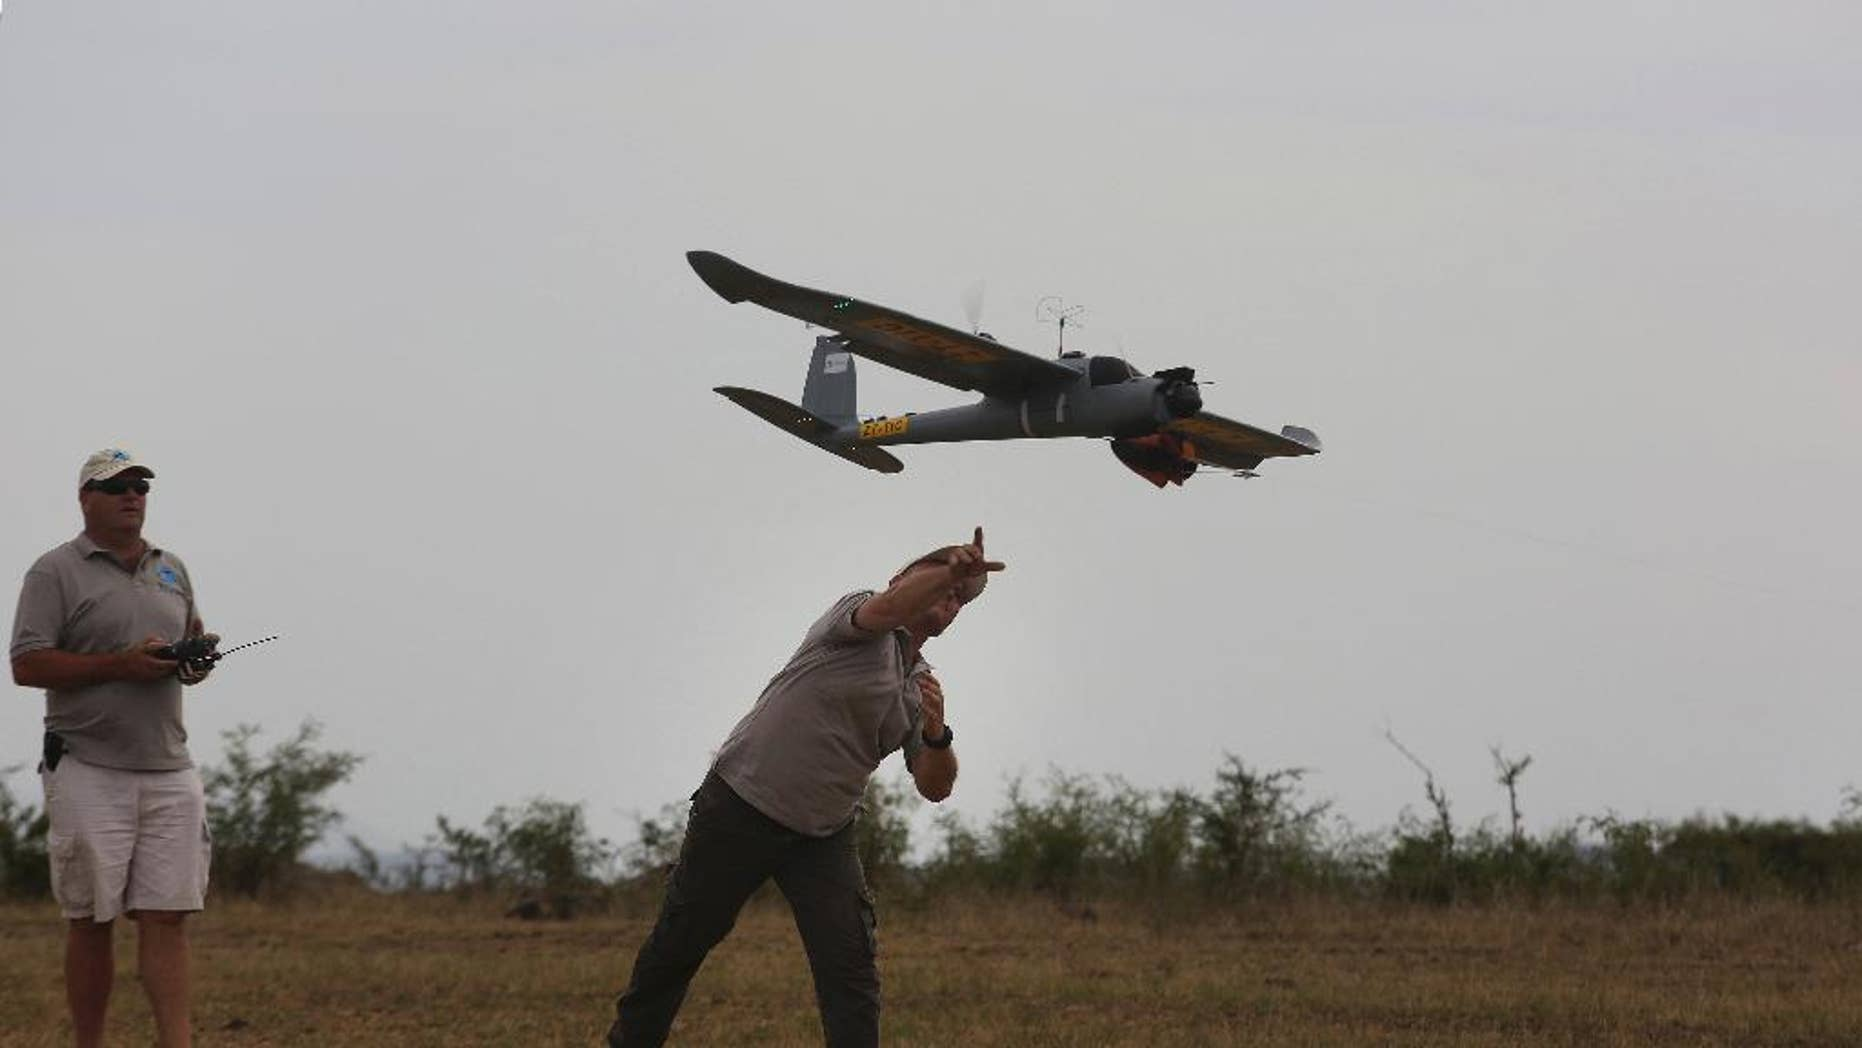 FILE -- In this file photo taken Monday, Feb. 15, 2016 a drone is launched in the Hluhluwe-iMfolozi Game Reserve in the KwaZulu Natal province. Conservationists say Zimbabwe and Malawi are allowing flights by anti-poaching drones as part of an initiative supported by Google and the WWF conservation group. (AP Photo/Denis Farrell, File)